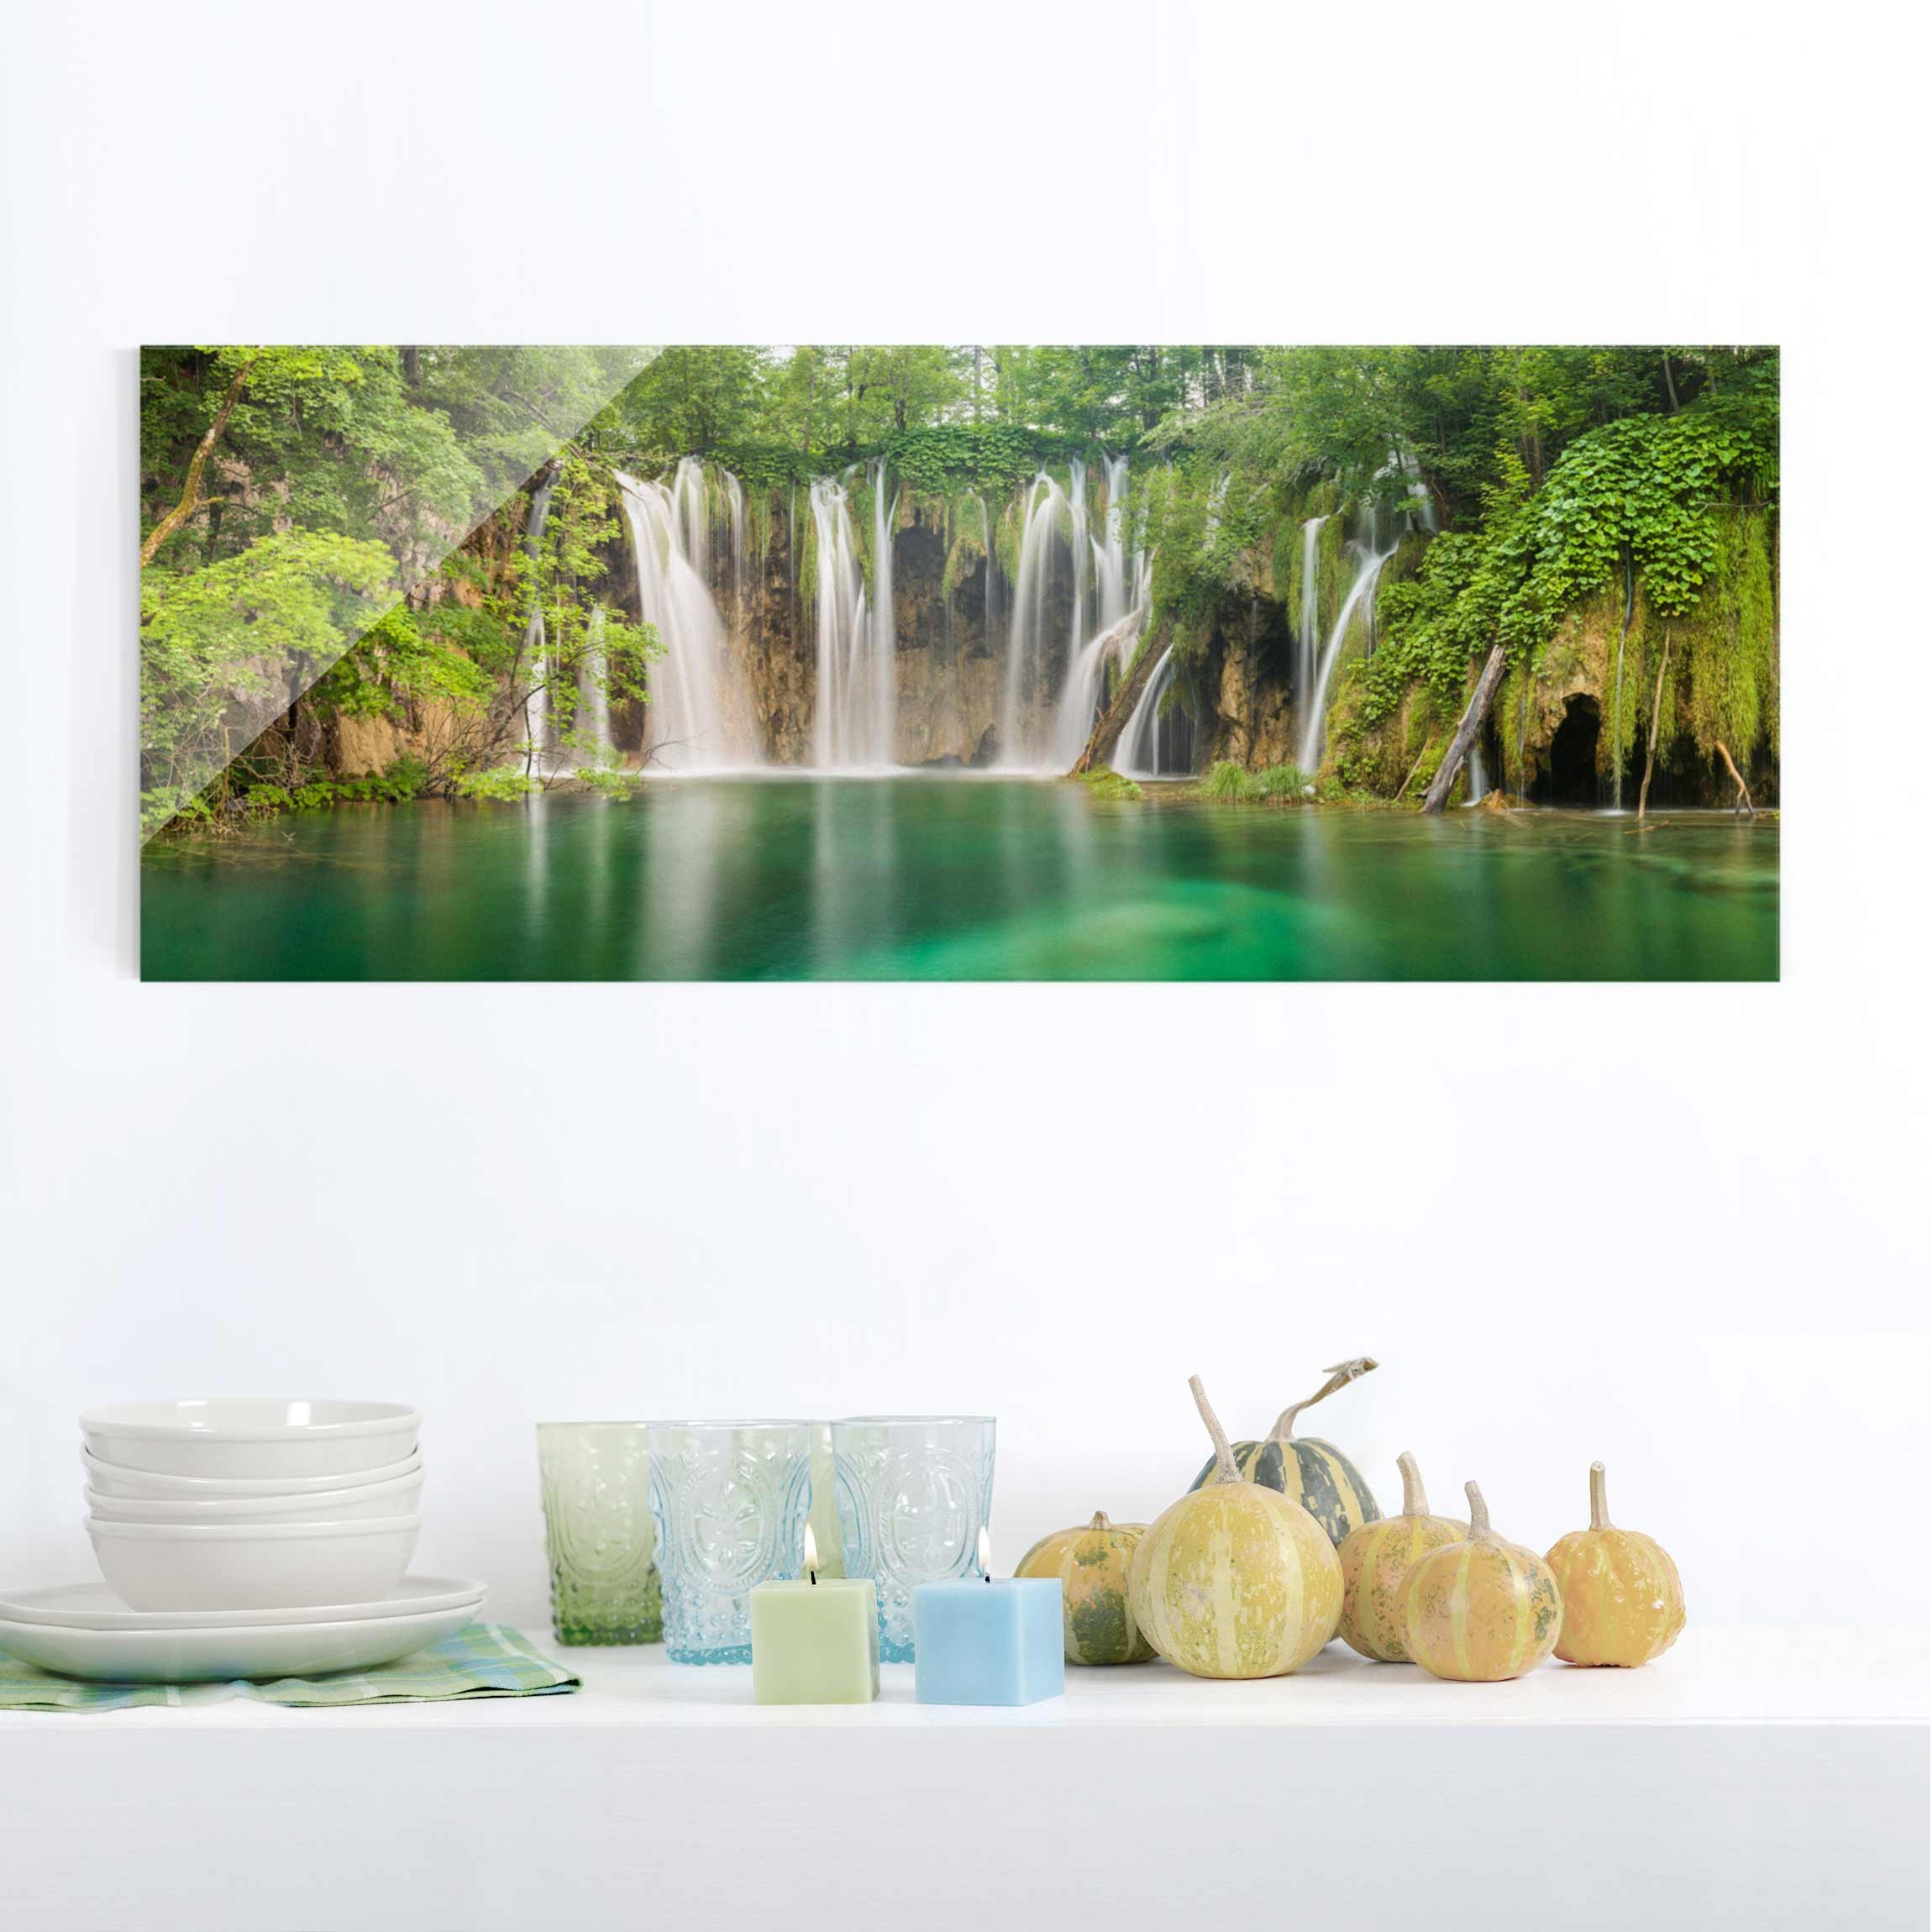 Glasbild - Wasserfall Plitvicer Seen - Panorama Quer